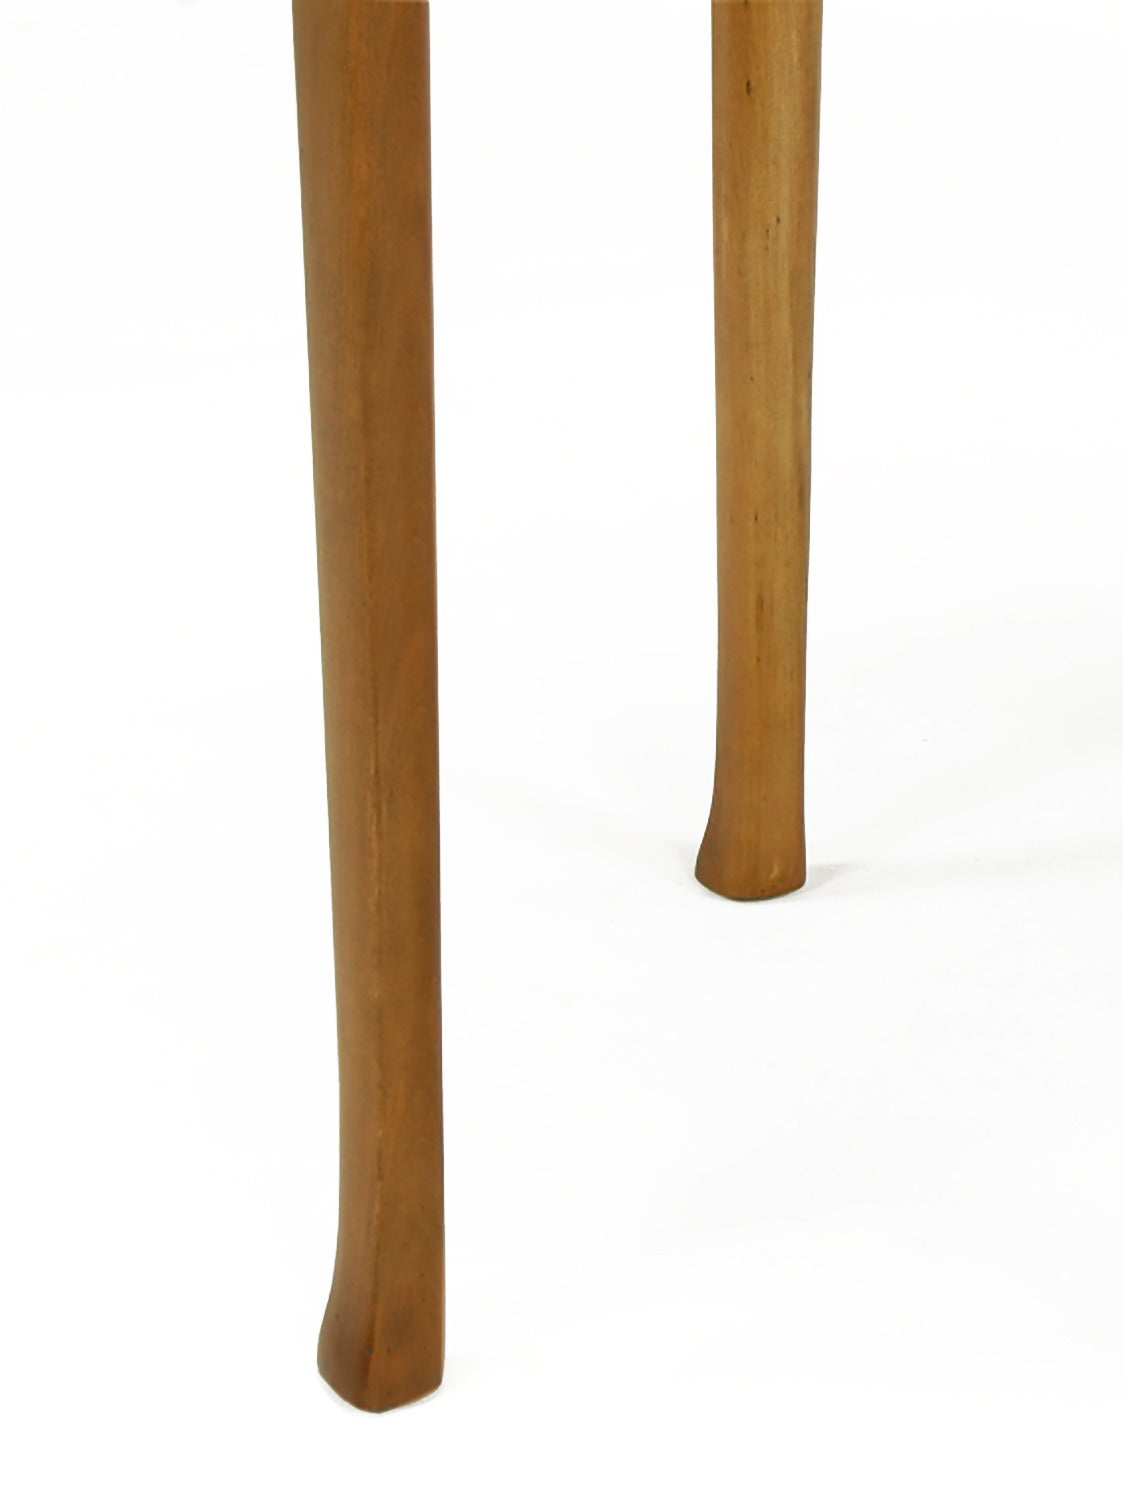 1940s Round Two-Tier Maple Side Table with Buffalo Leather Inlay For Sale 2